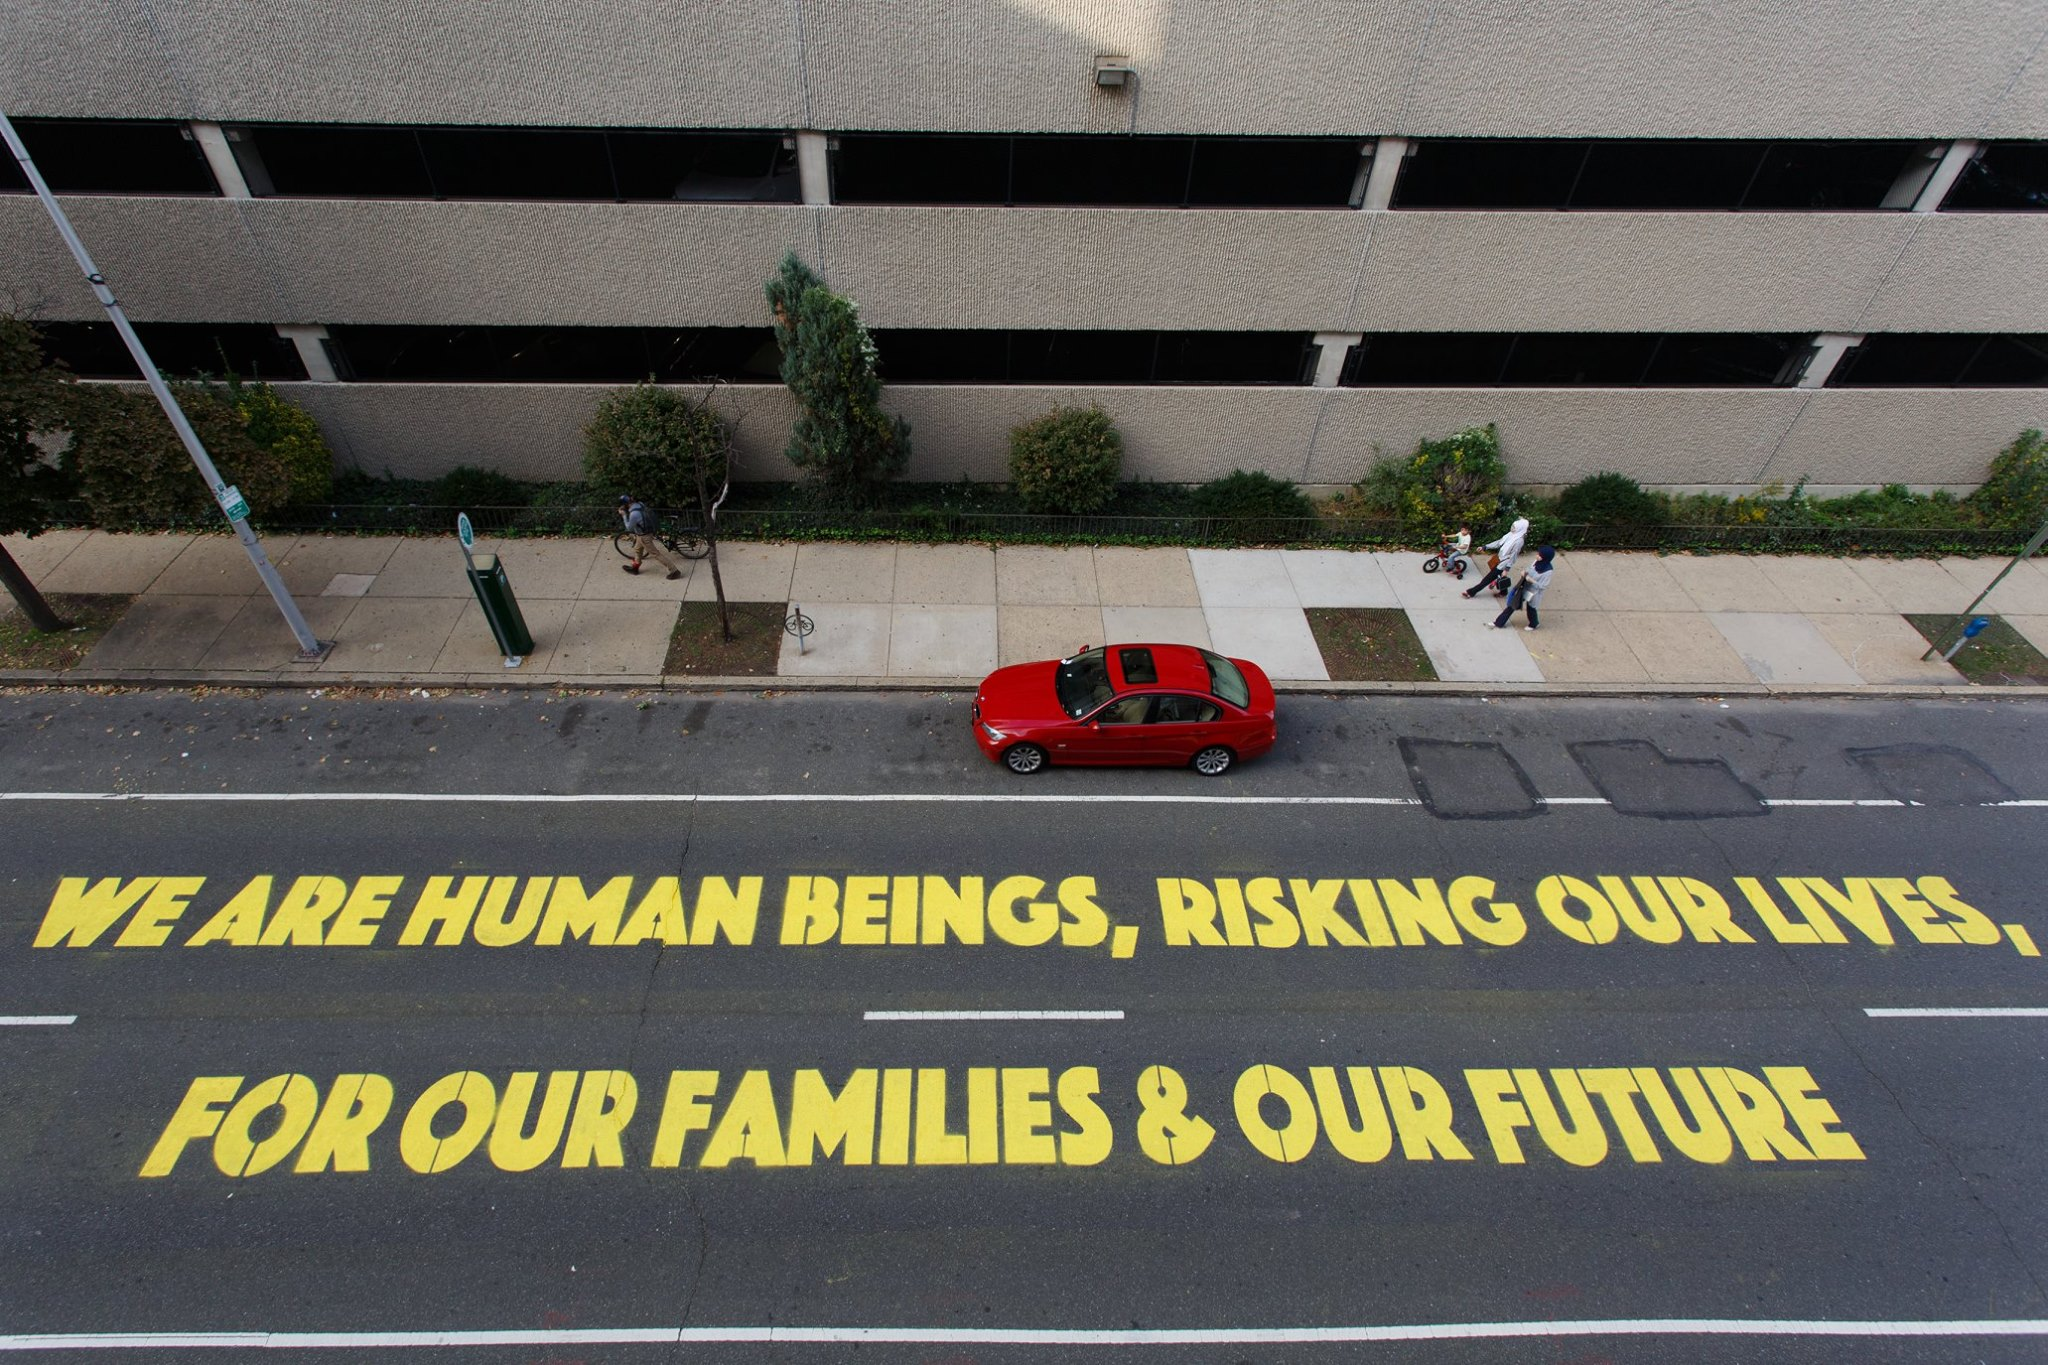 """A street mural by JUNTOS that reads """"We are human beings, risking our lives, for our families & our future"""""""